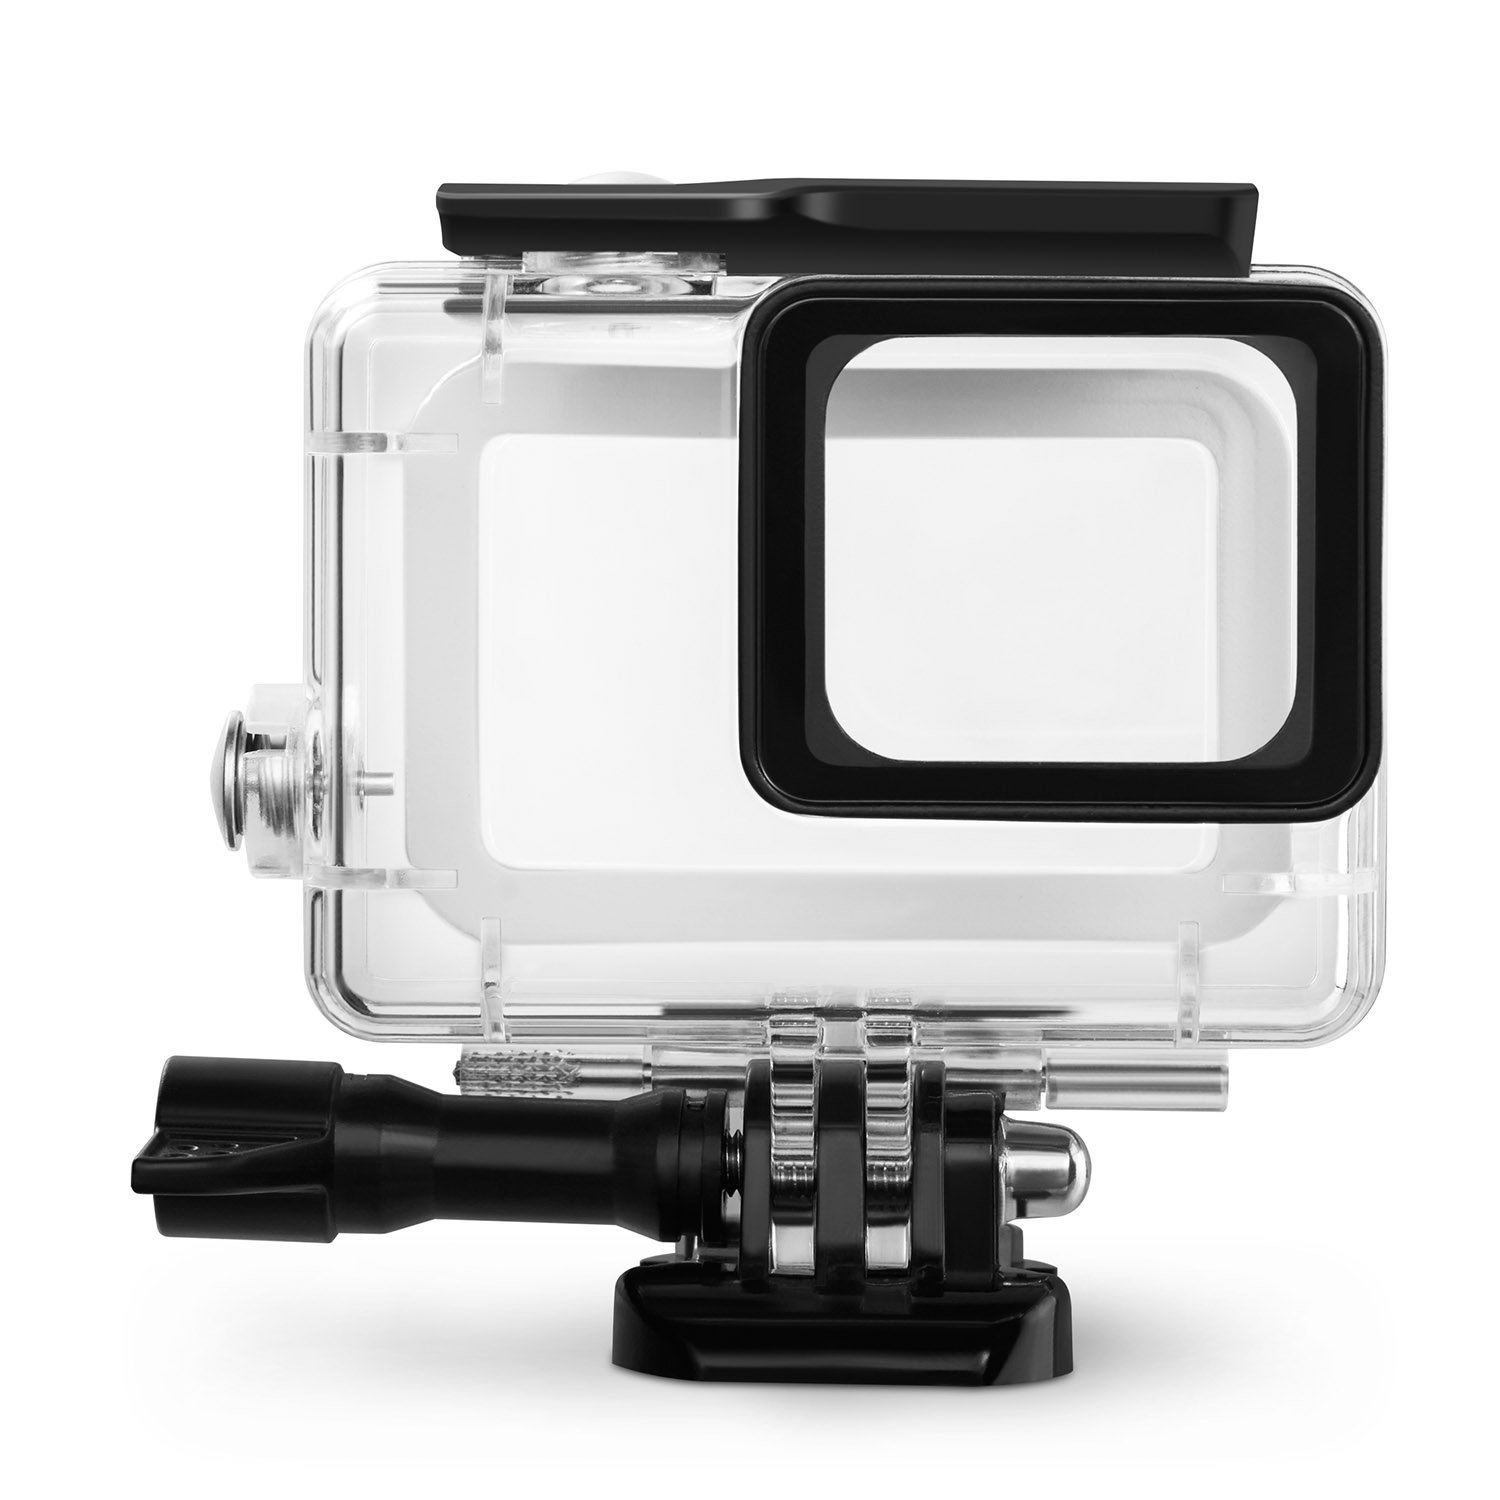 IG-Waterproof Housing for GoPro Hero (2018)/6/5, Underwater Protective Case Shell 45M with Quick Release Bracket & Thumbscrew image